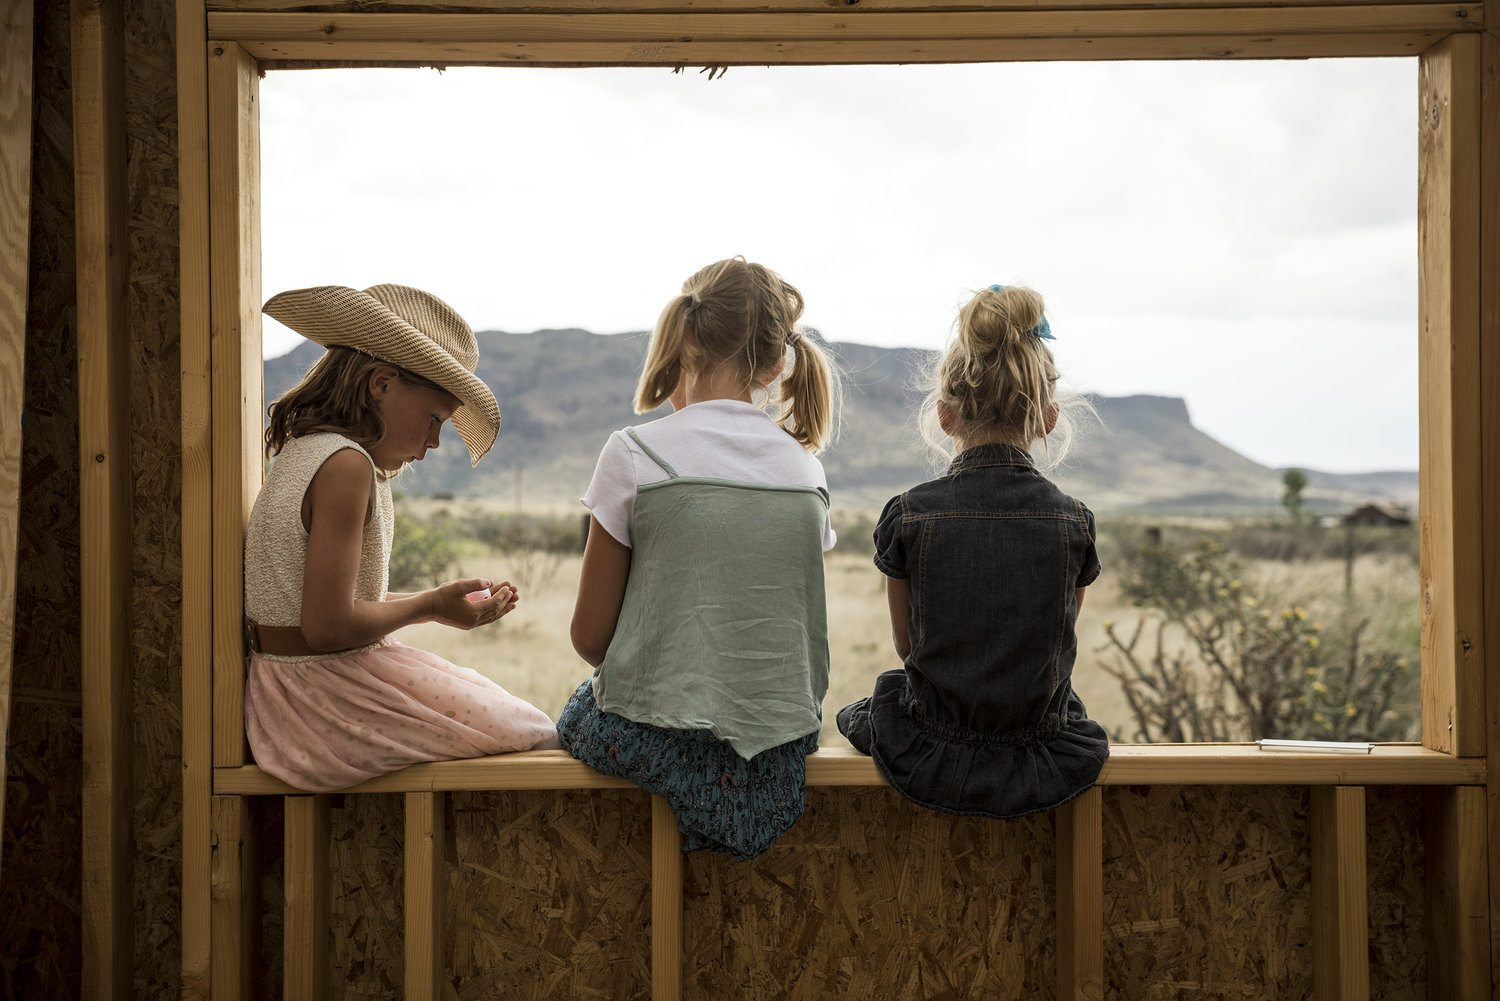 Home on the range: Border States helps build cowboy's